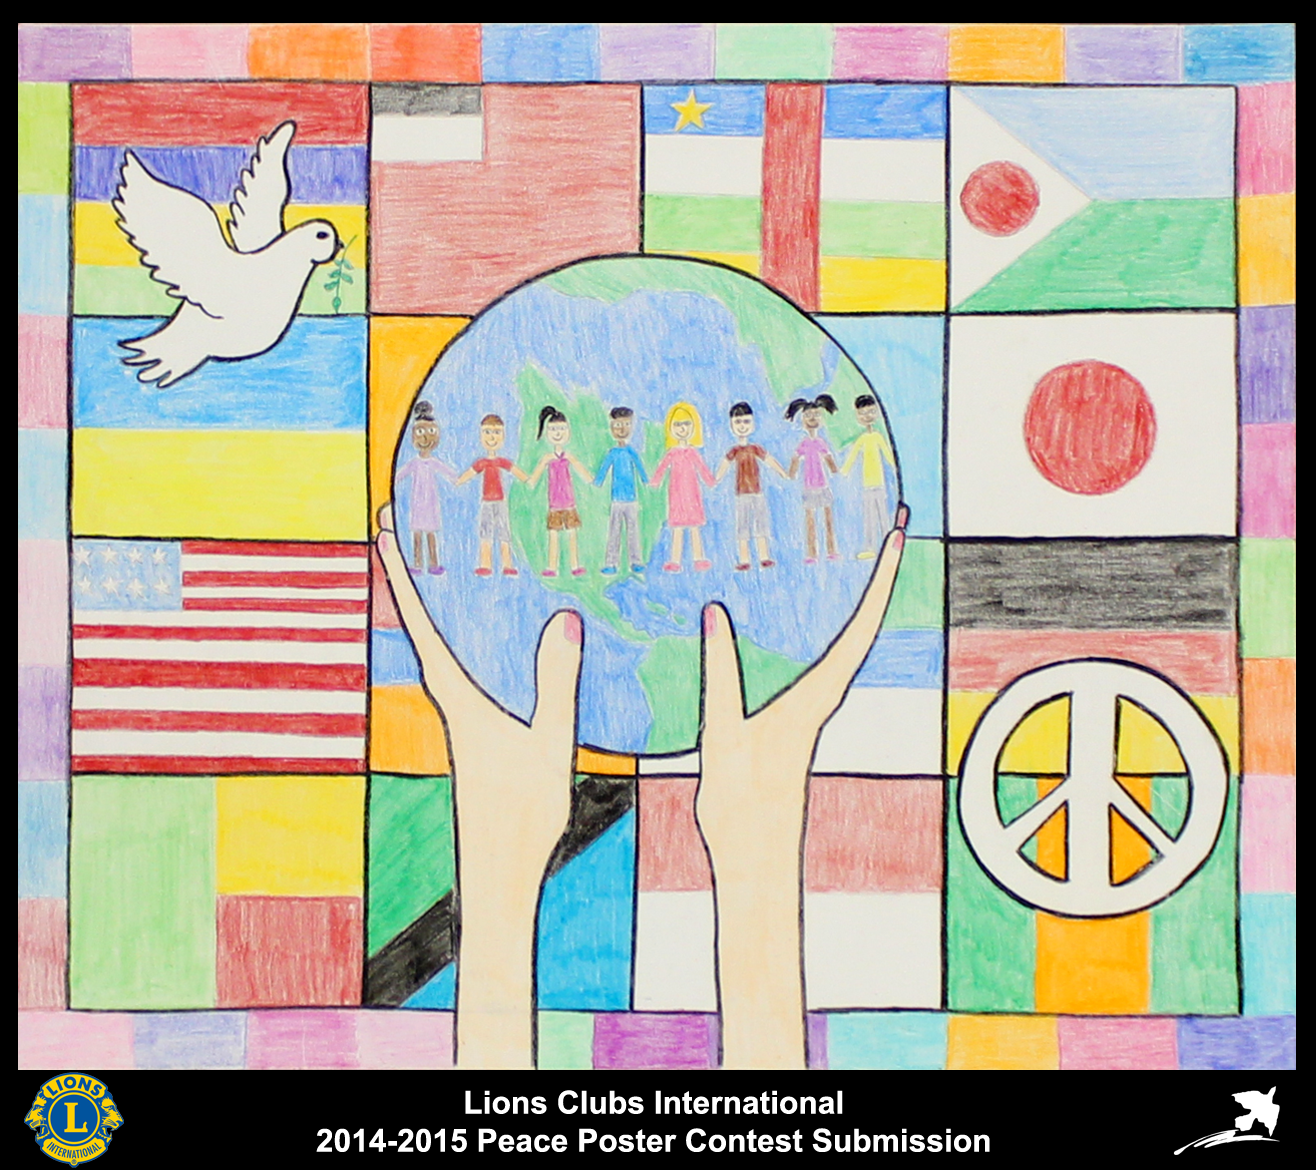 201415 Lions Clubs International Peace Poster Competition